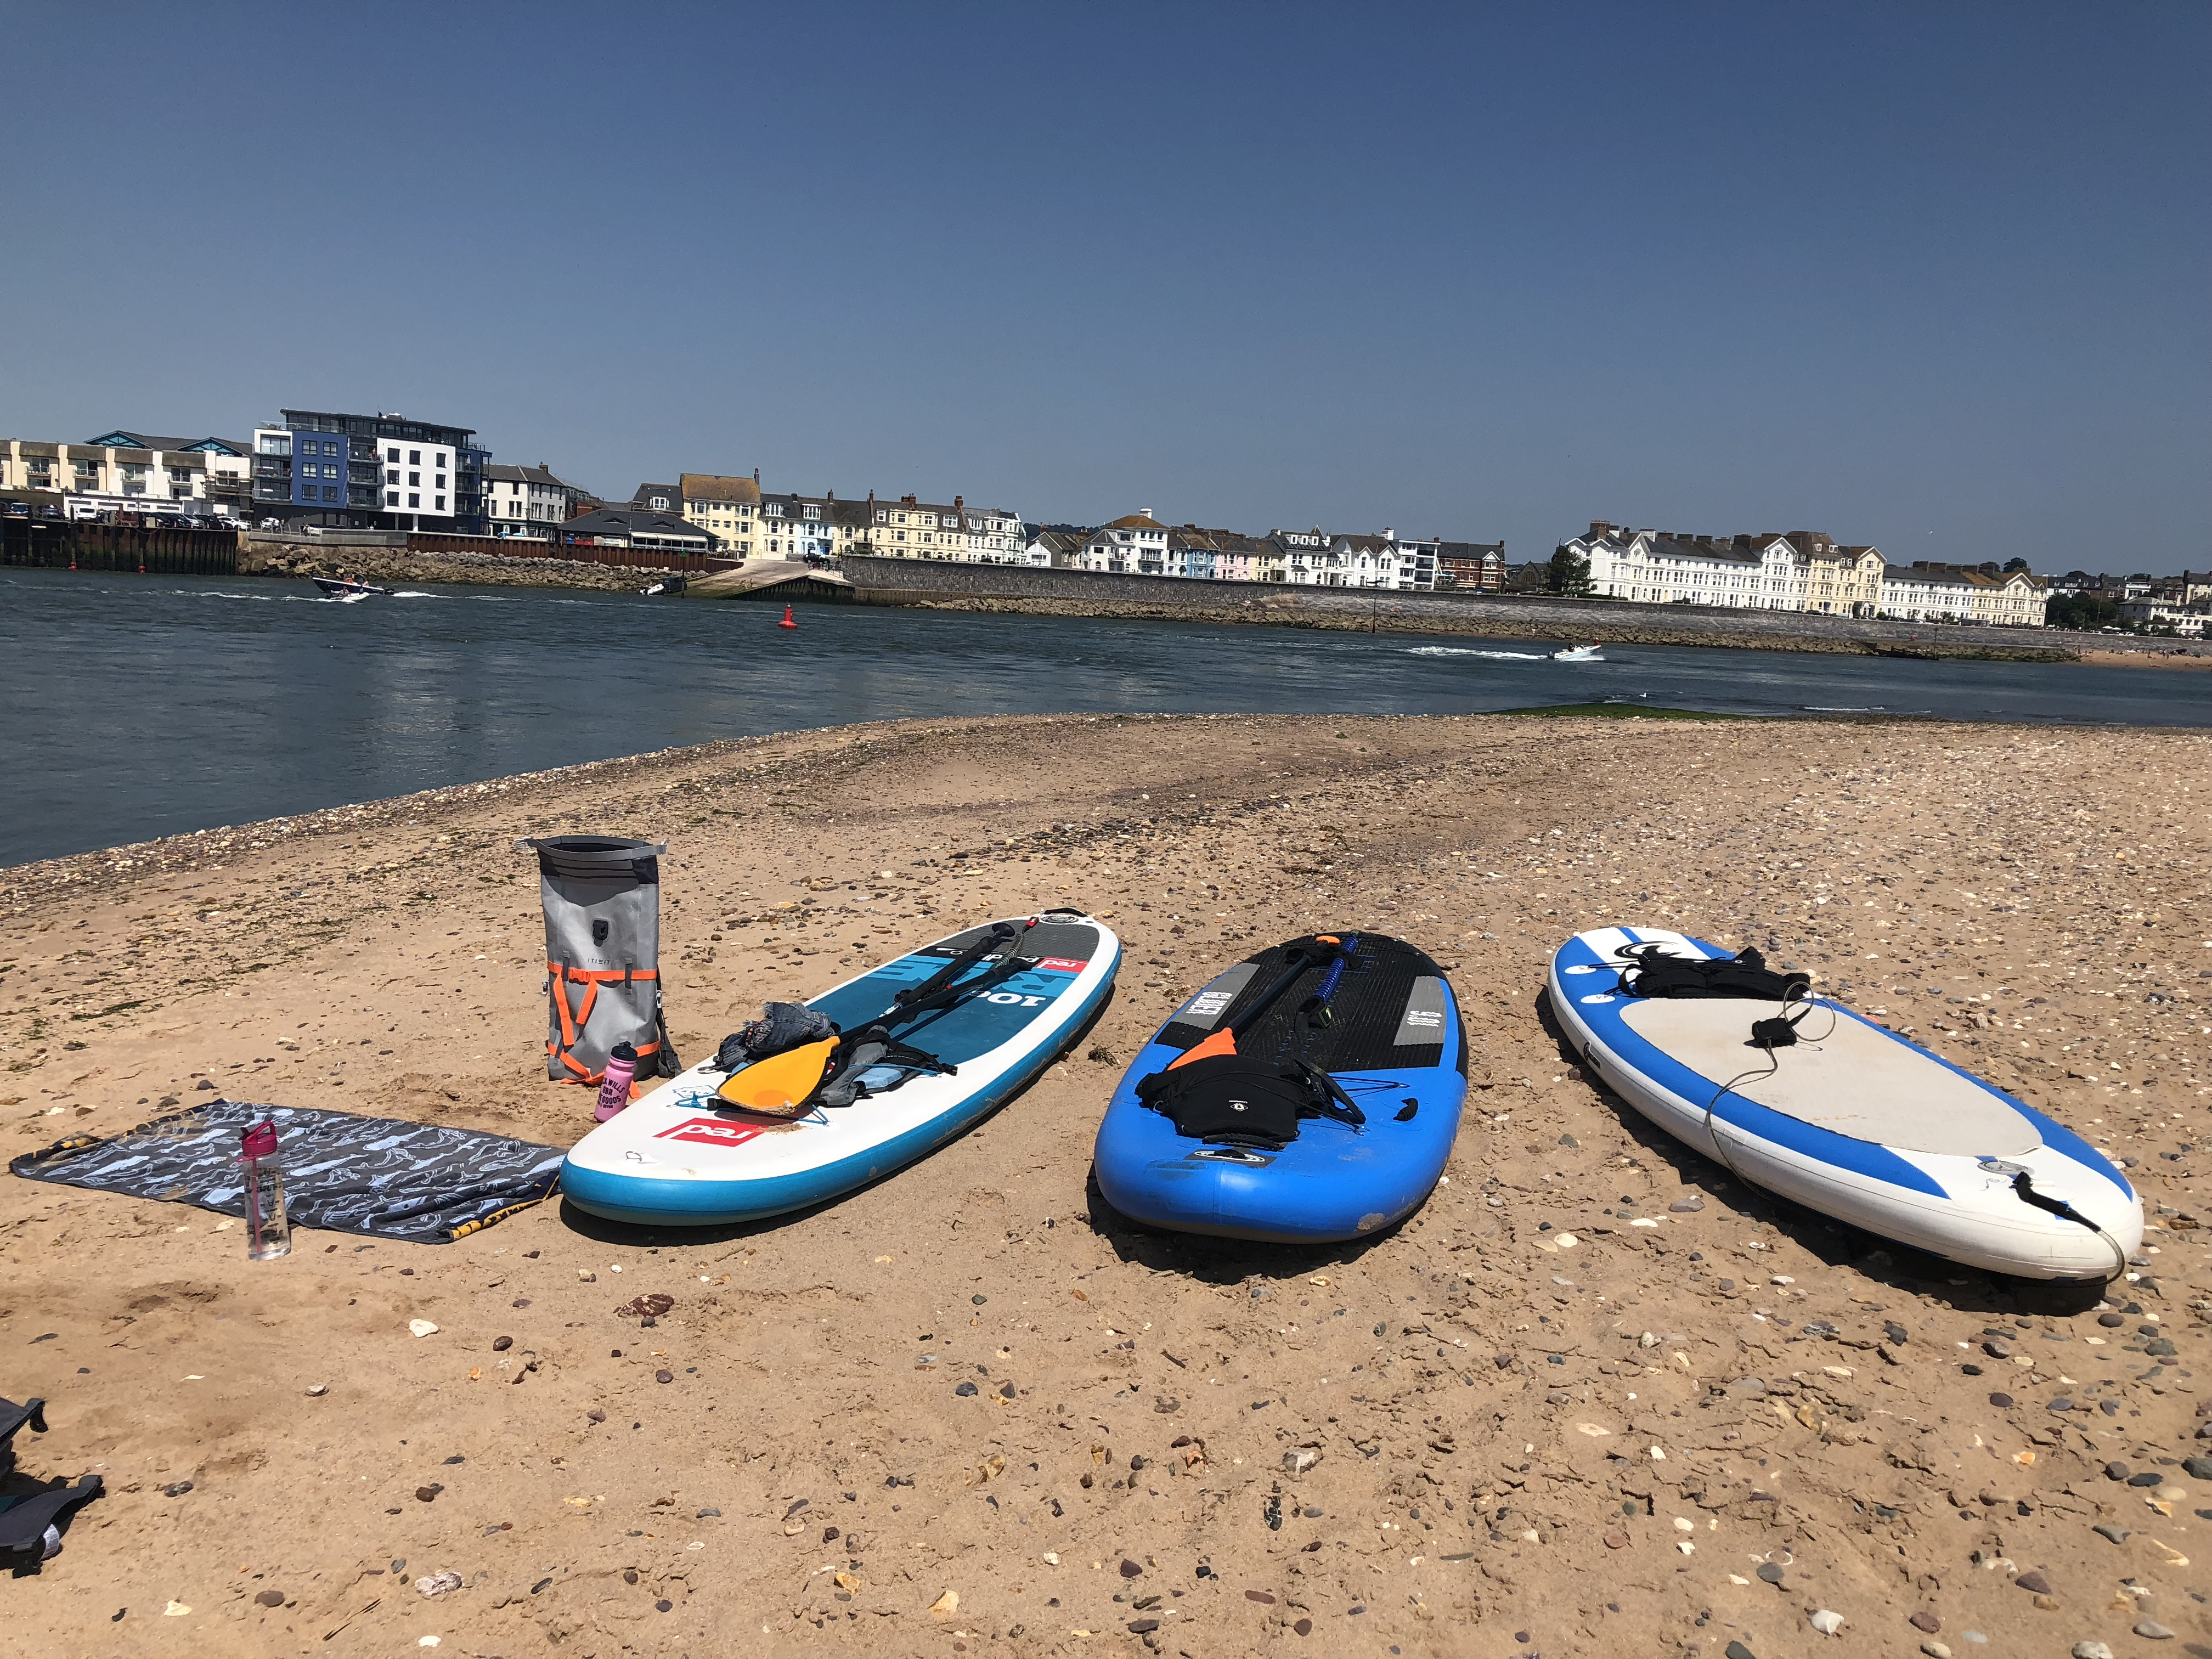 Paddleboards in Dawlish